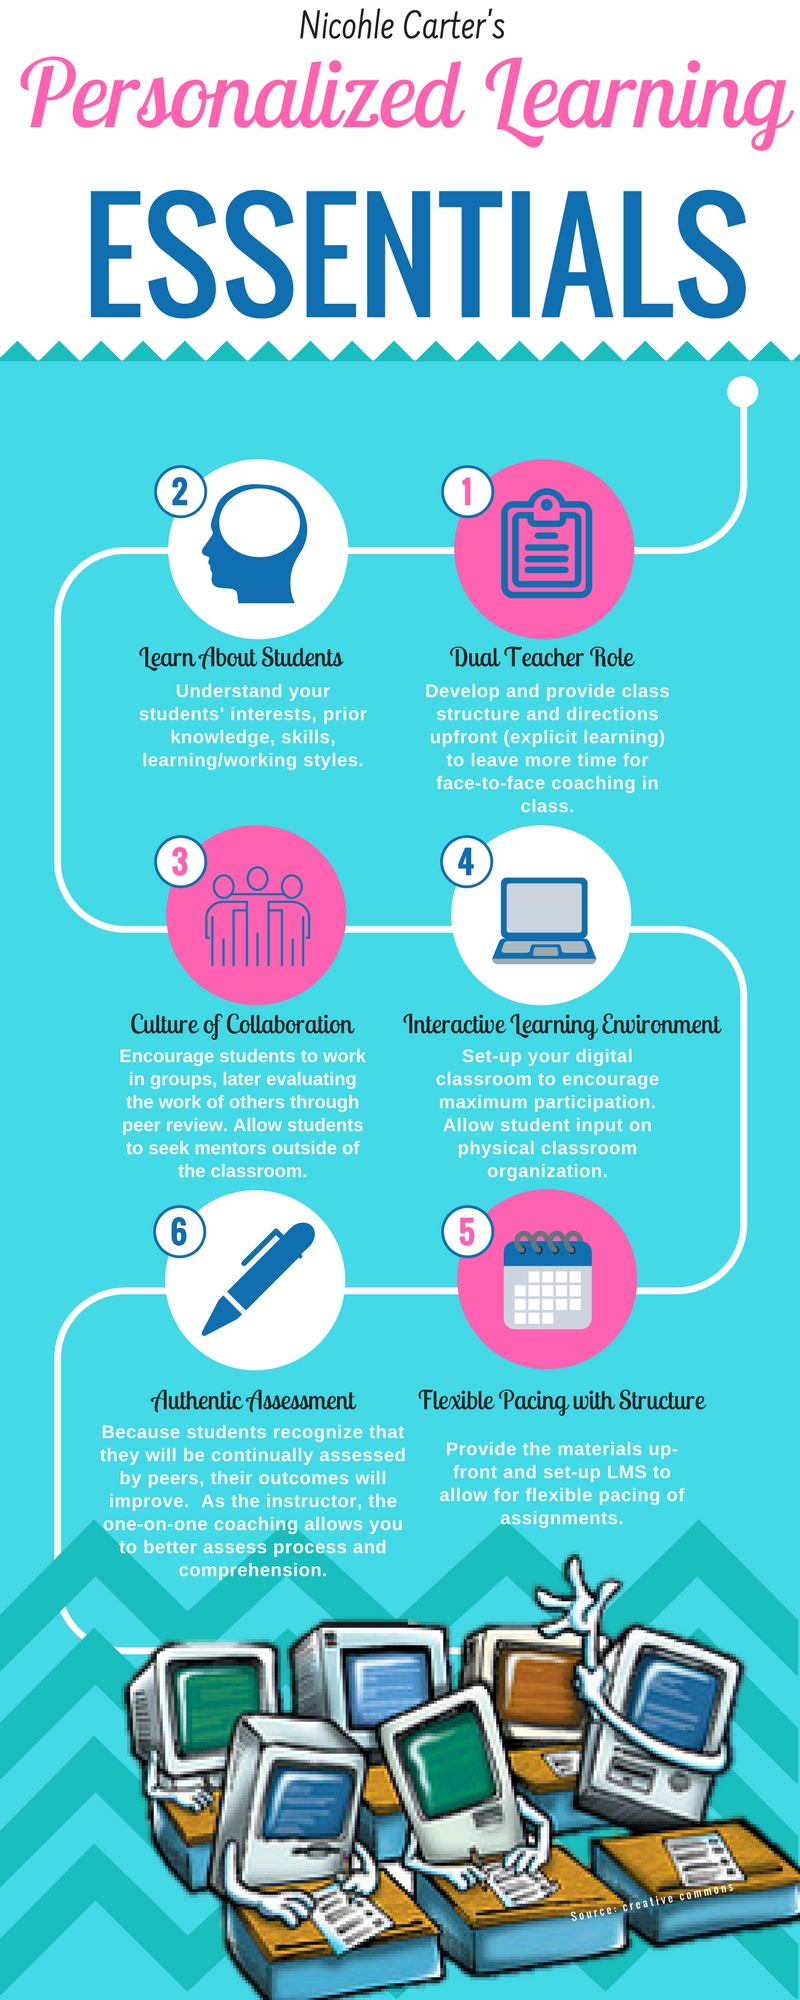 Infographic highlighting 6 essentials for personalized learning.